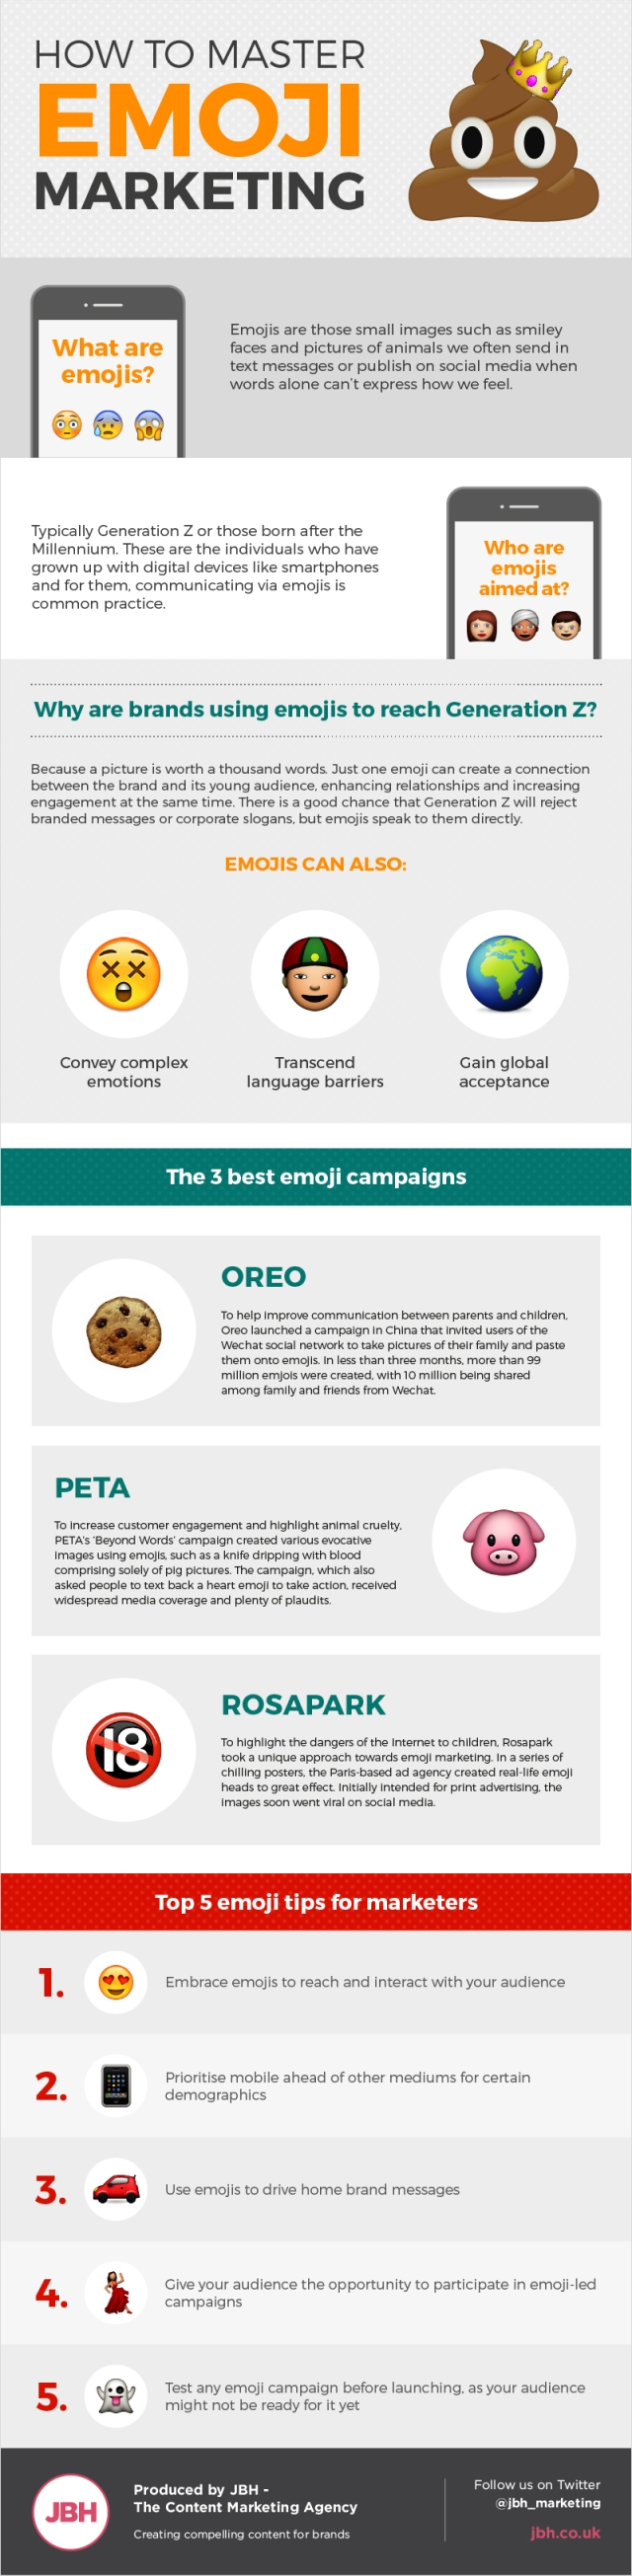 How to Use Emoji's to Ramp Up Your Social Media Marketing Strategy